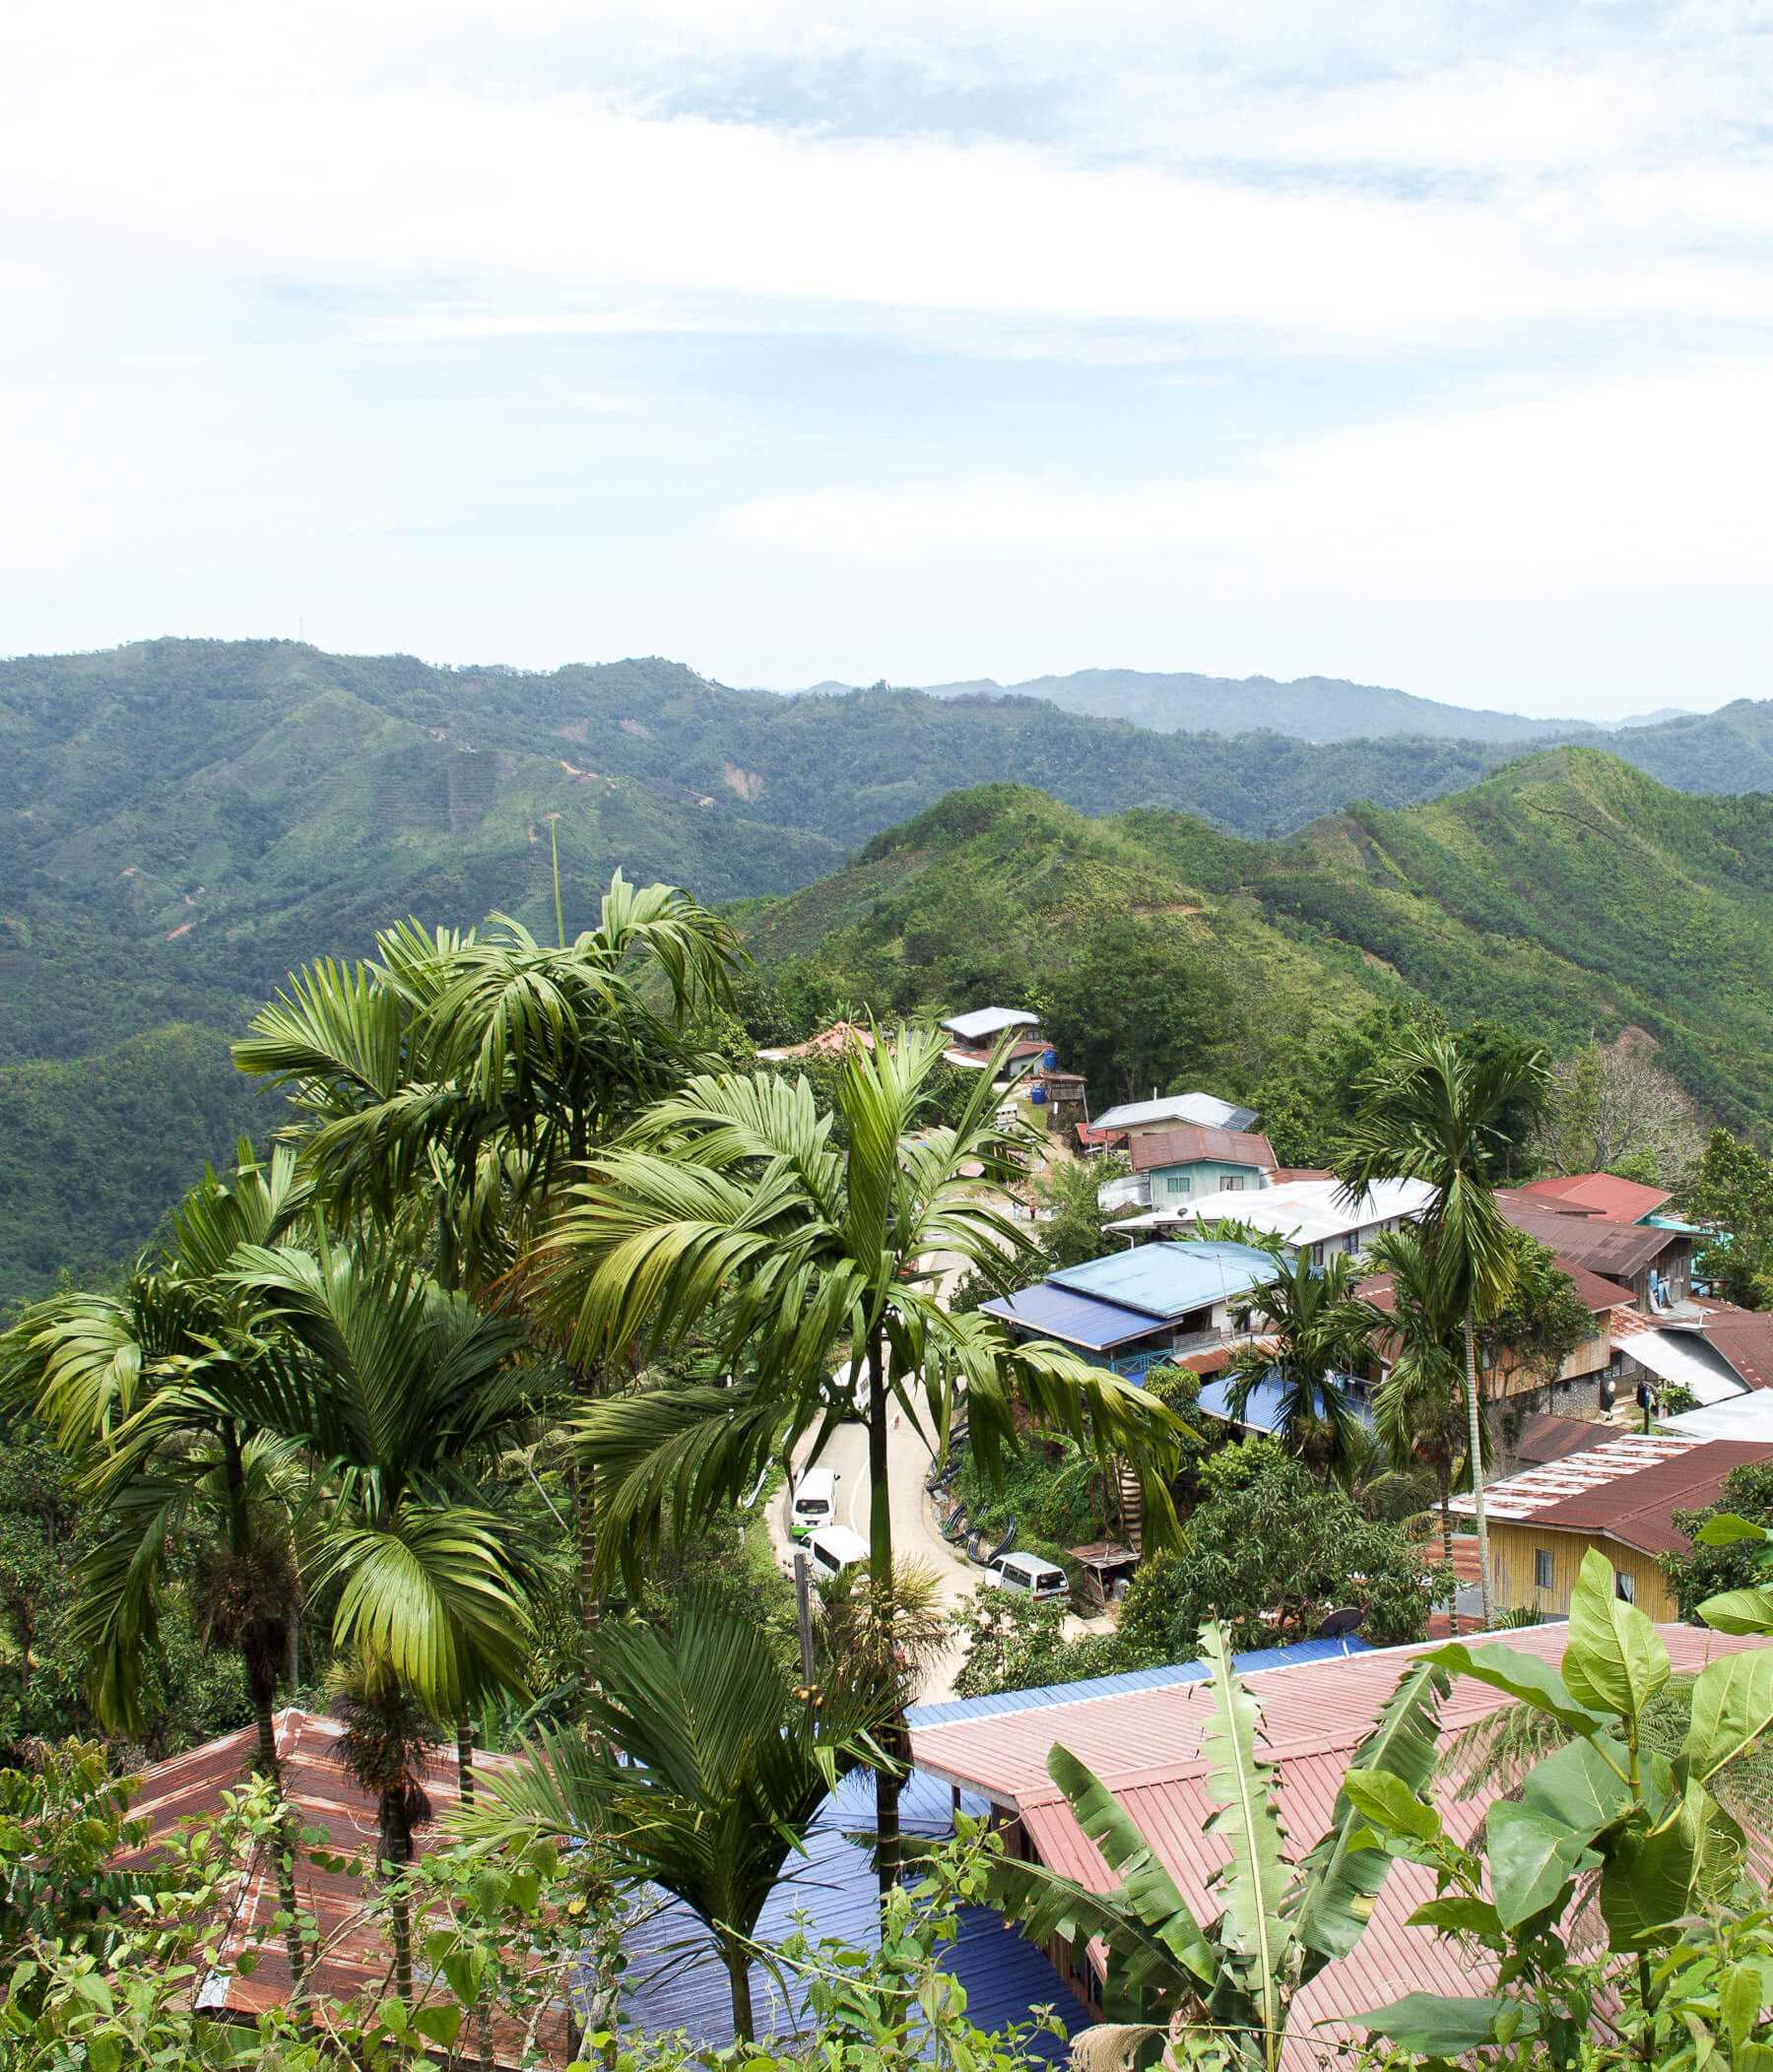 Village along the bridge of a mountain top - distant hills and jungle in the background